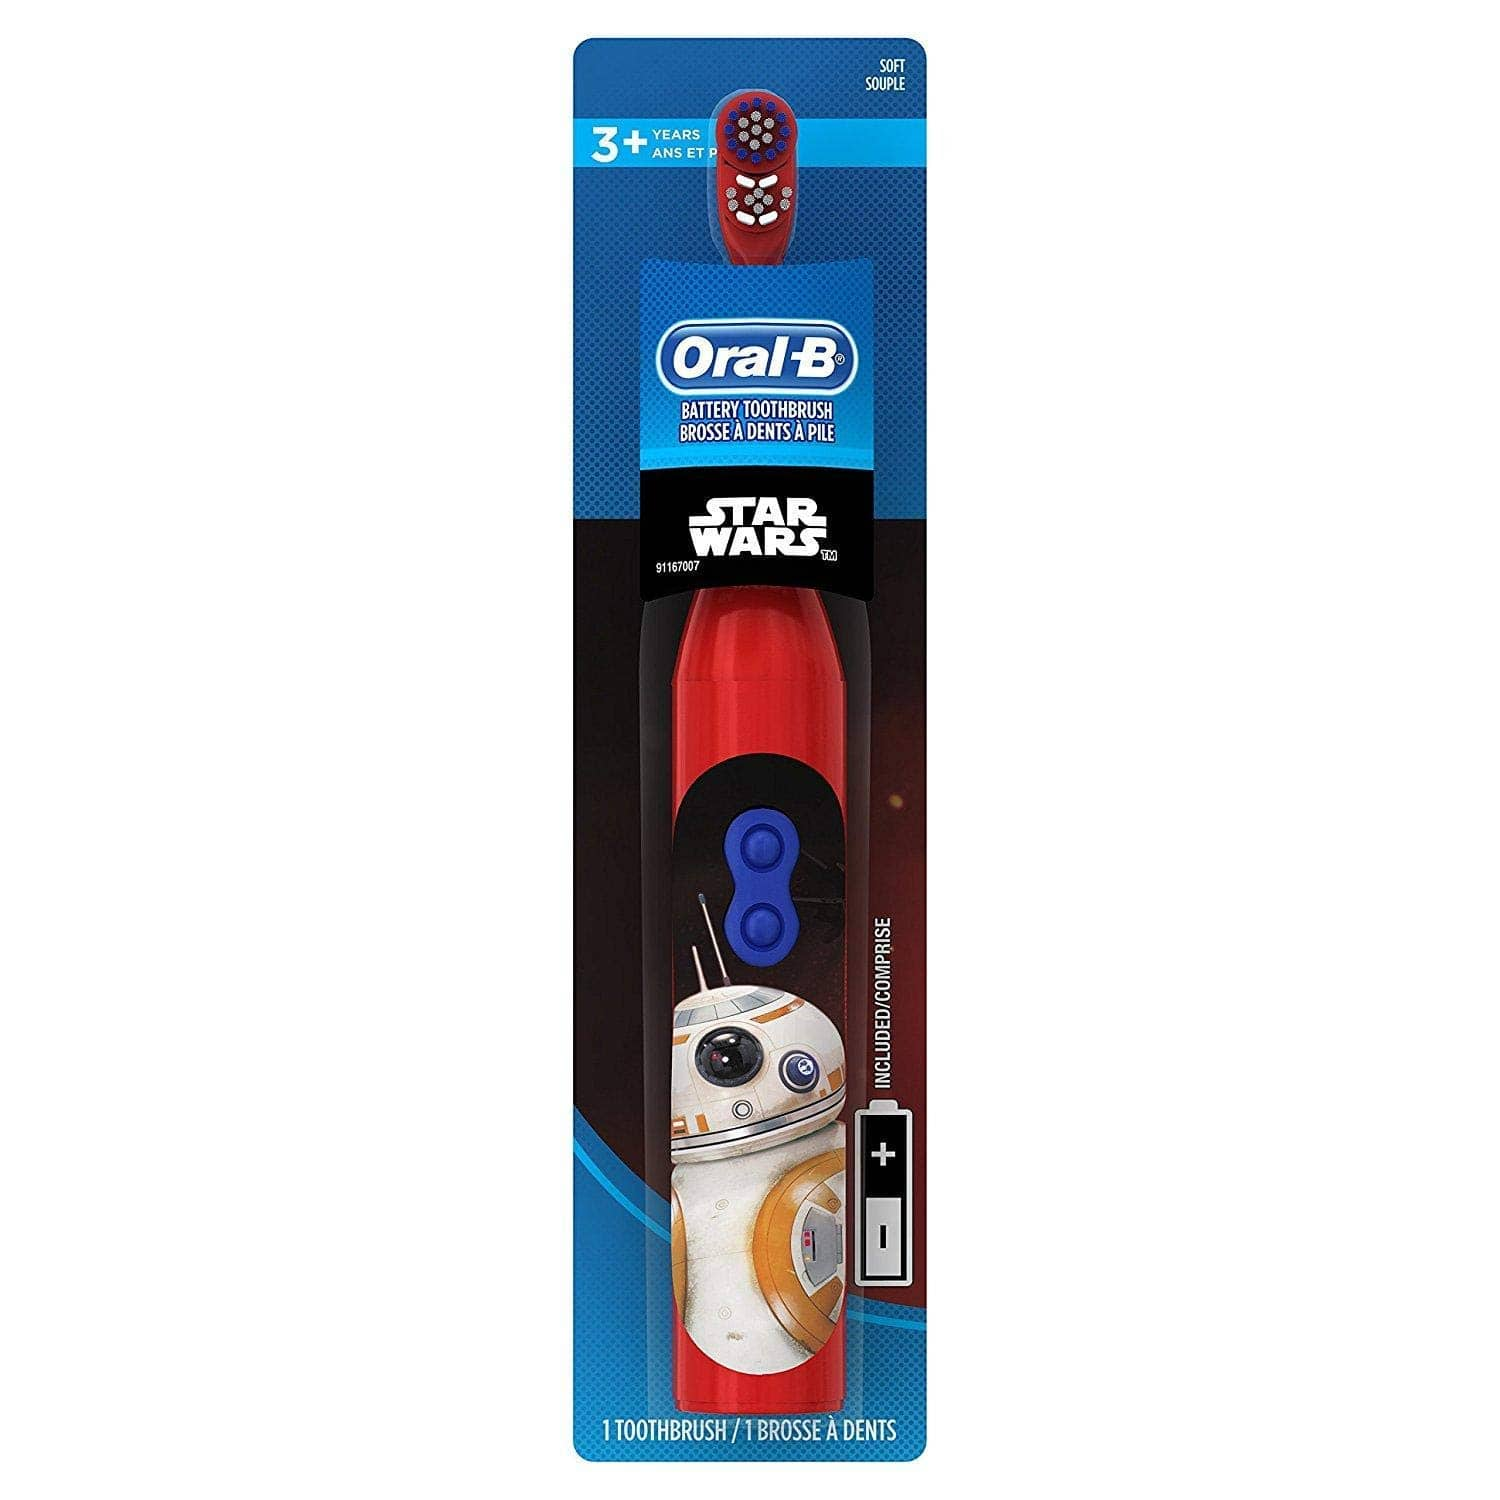 Oral-B Kids Battery Powered Electric Toothbrush Featuring Disney STAR WARS with Extra Soft Bristles, for Children and Toddlers age 3+ 3 For $9.78